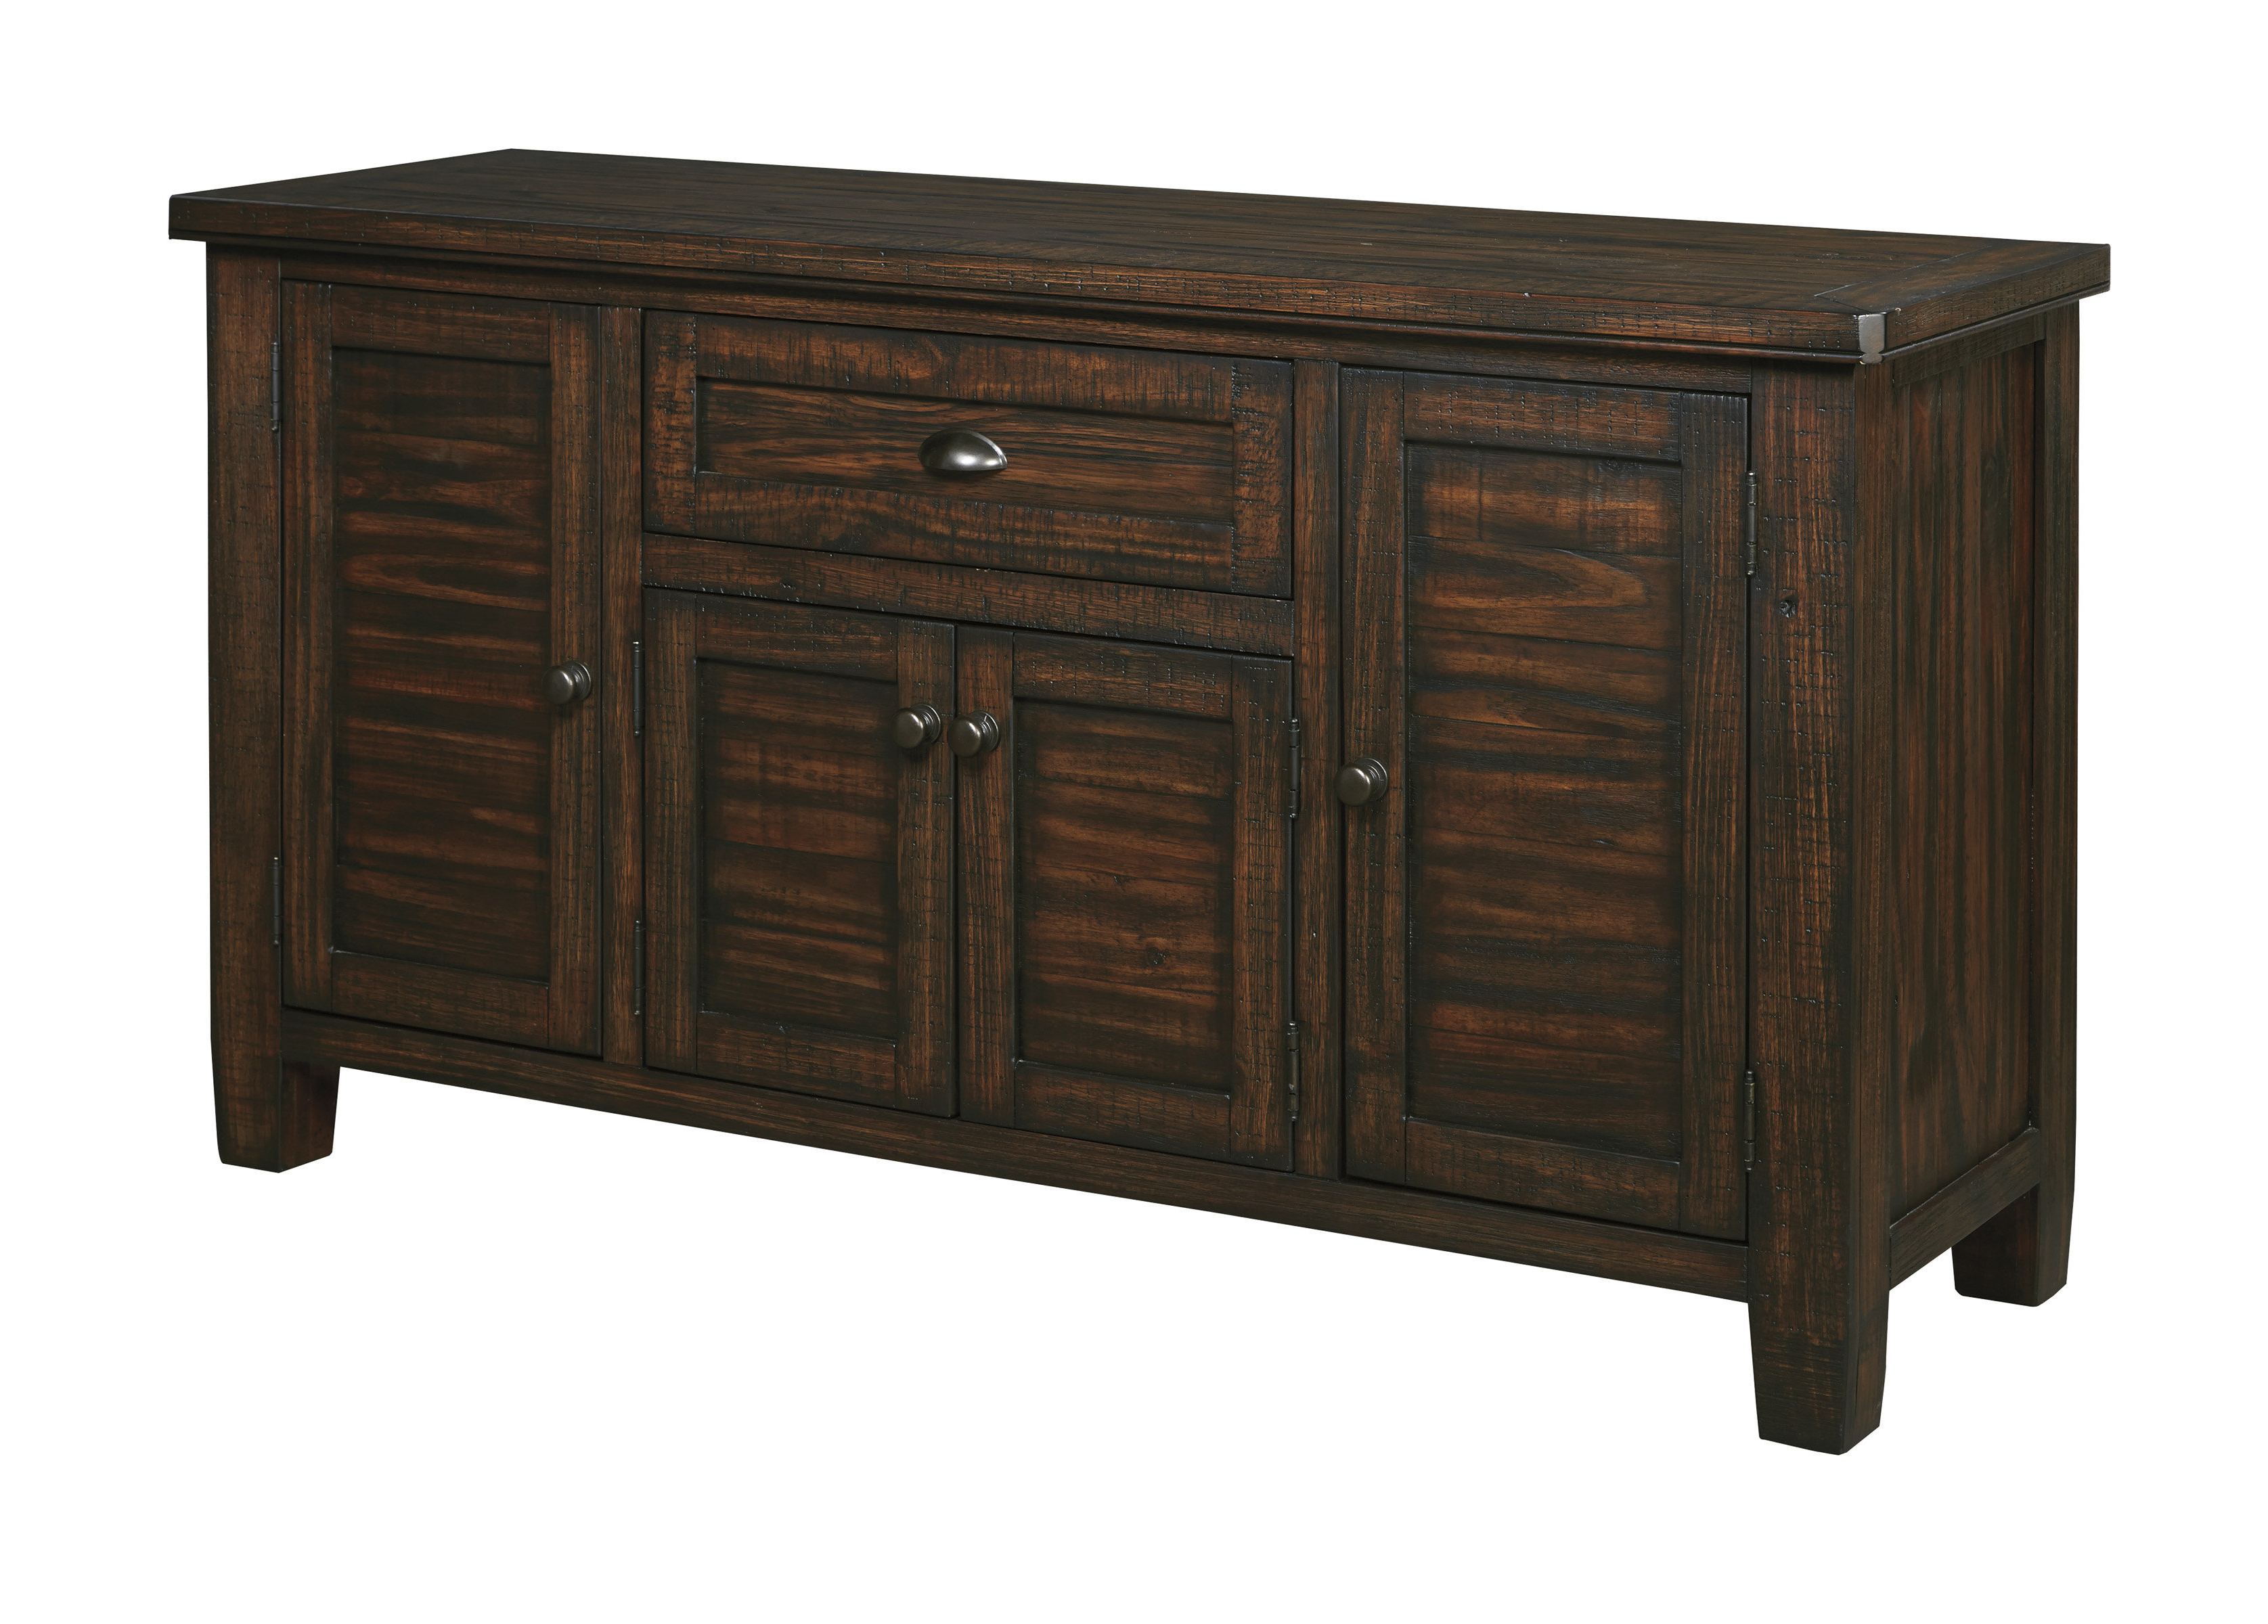 Popular Seiling Sideboards With Regard To Chaffins Sideboard (View 11 of 20)